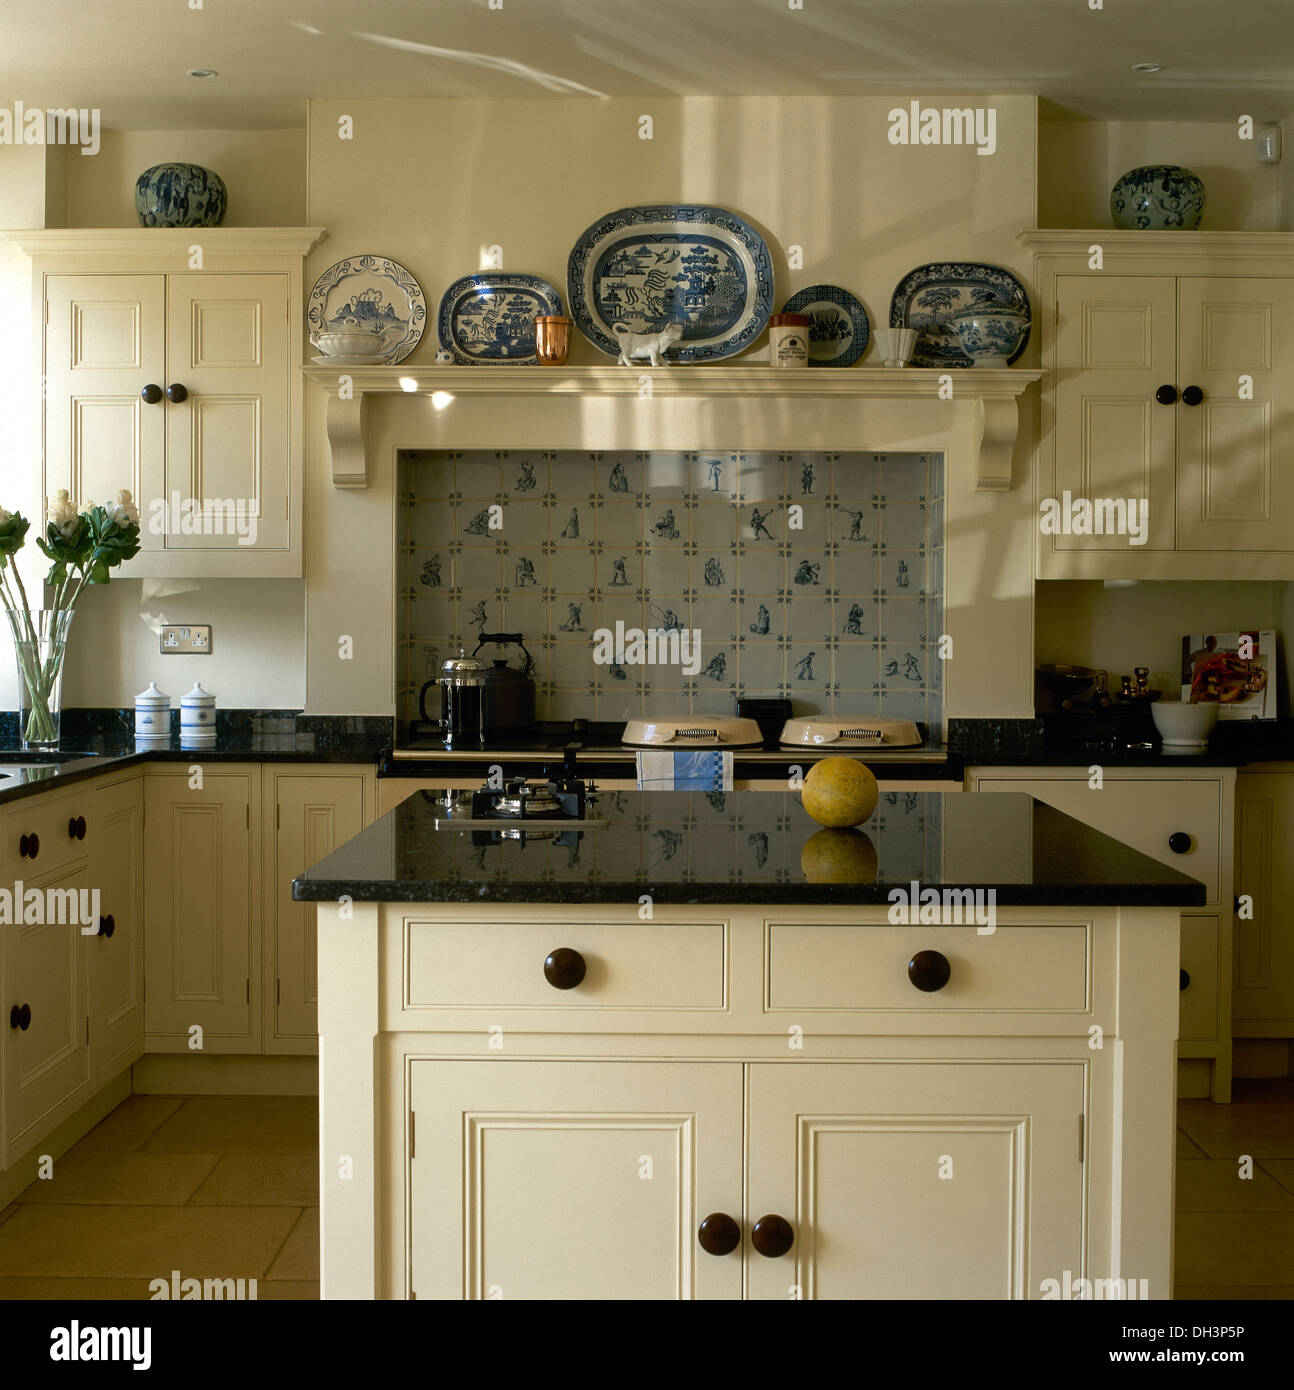 Granite Worktop On Island Unit In Country Kitchen With